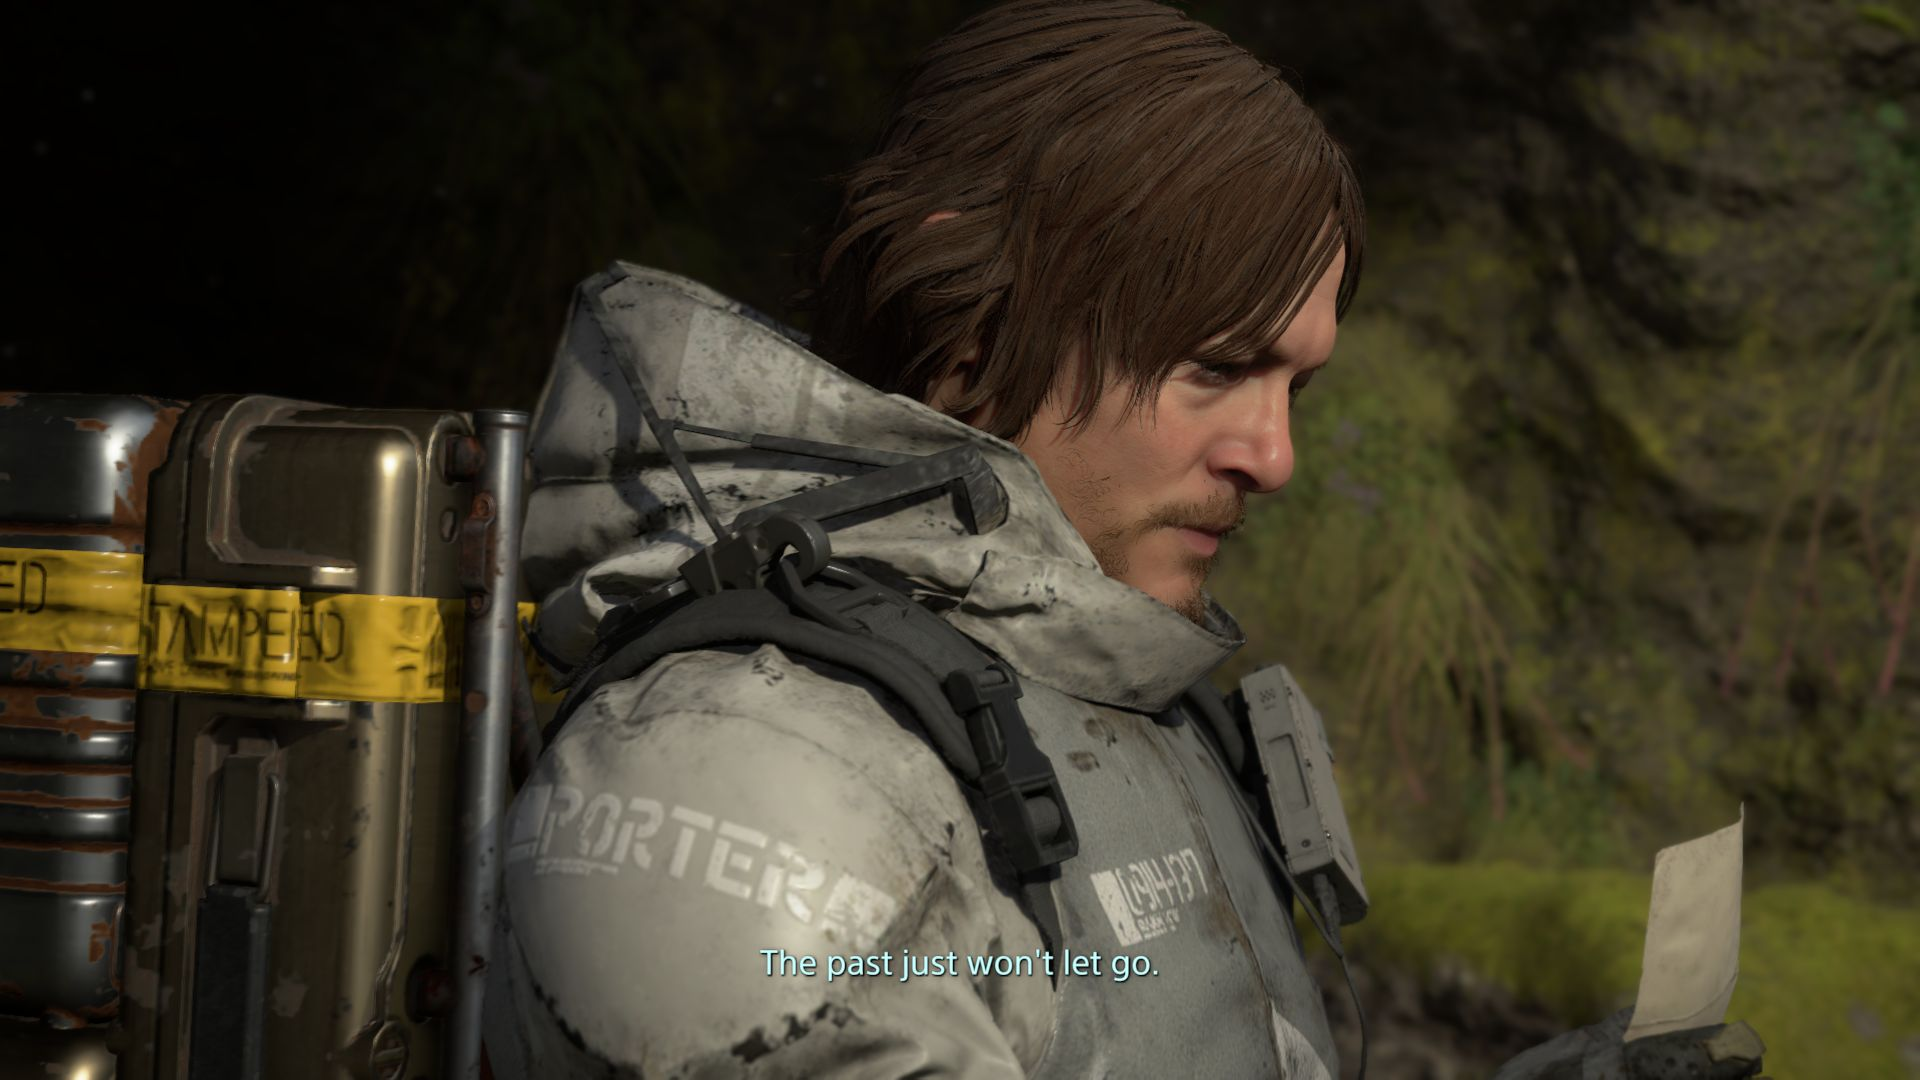 A screenshot of Death Stranding showing the protagonist looking at a sad photo